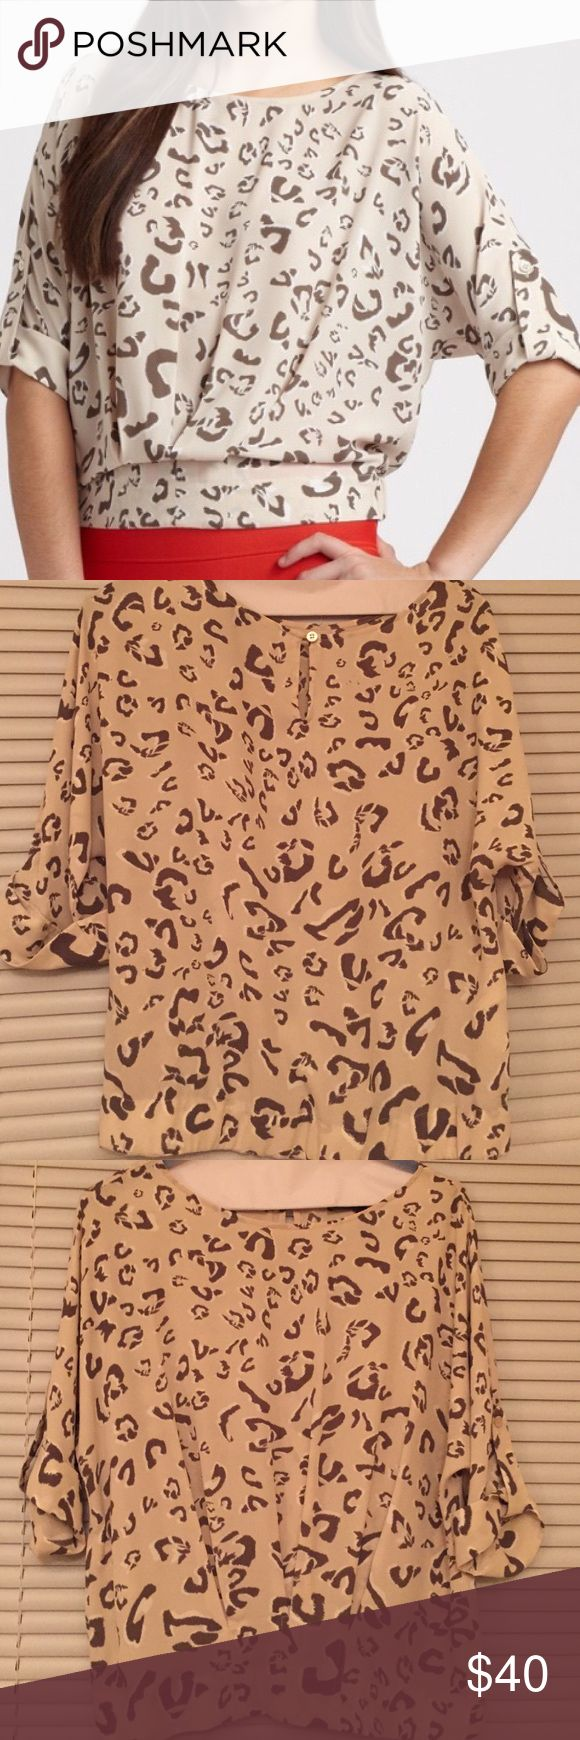 BCBG silk tan animal print batwing top Excellent used condition, easy to dress up and down. Can be worn year round to work or out on the town. BCBGMaxAzria Tops Tees - Short Sleeve